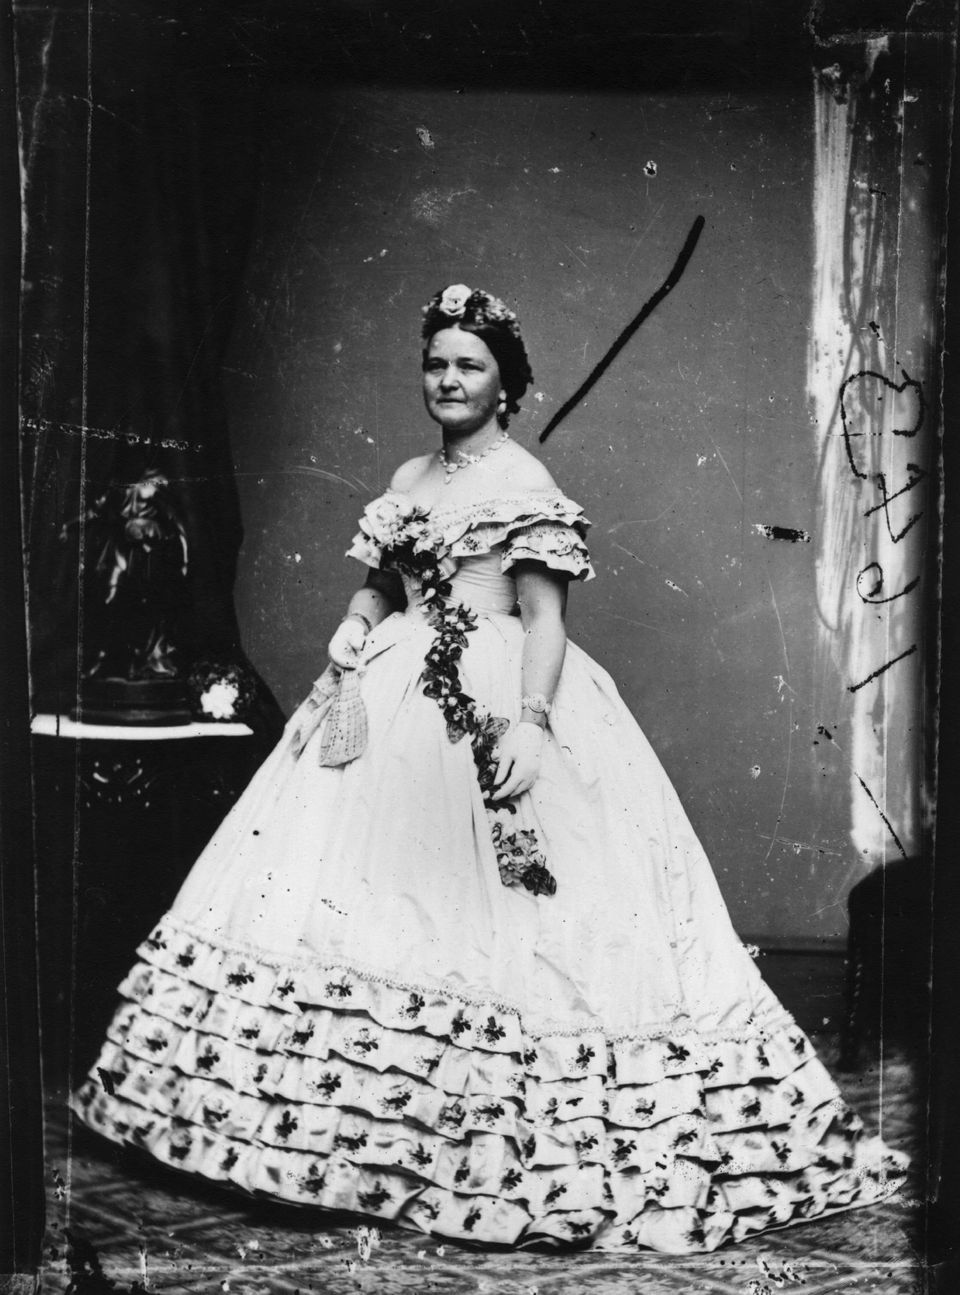 Mary Todd Lincoln dressed for Abraham Lincoln's inauguration on March 4, 1861